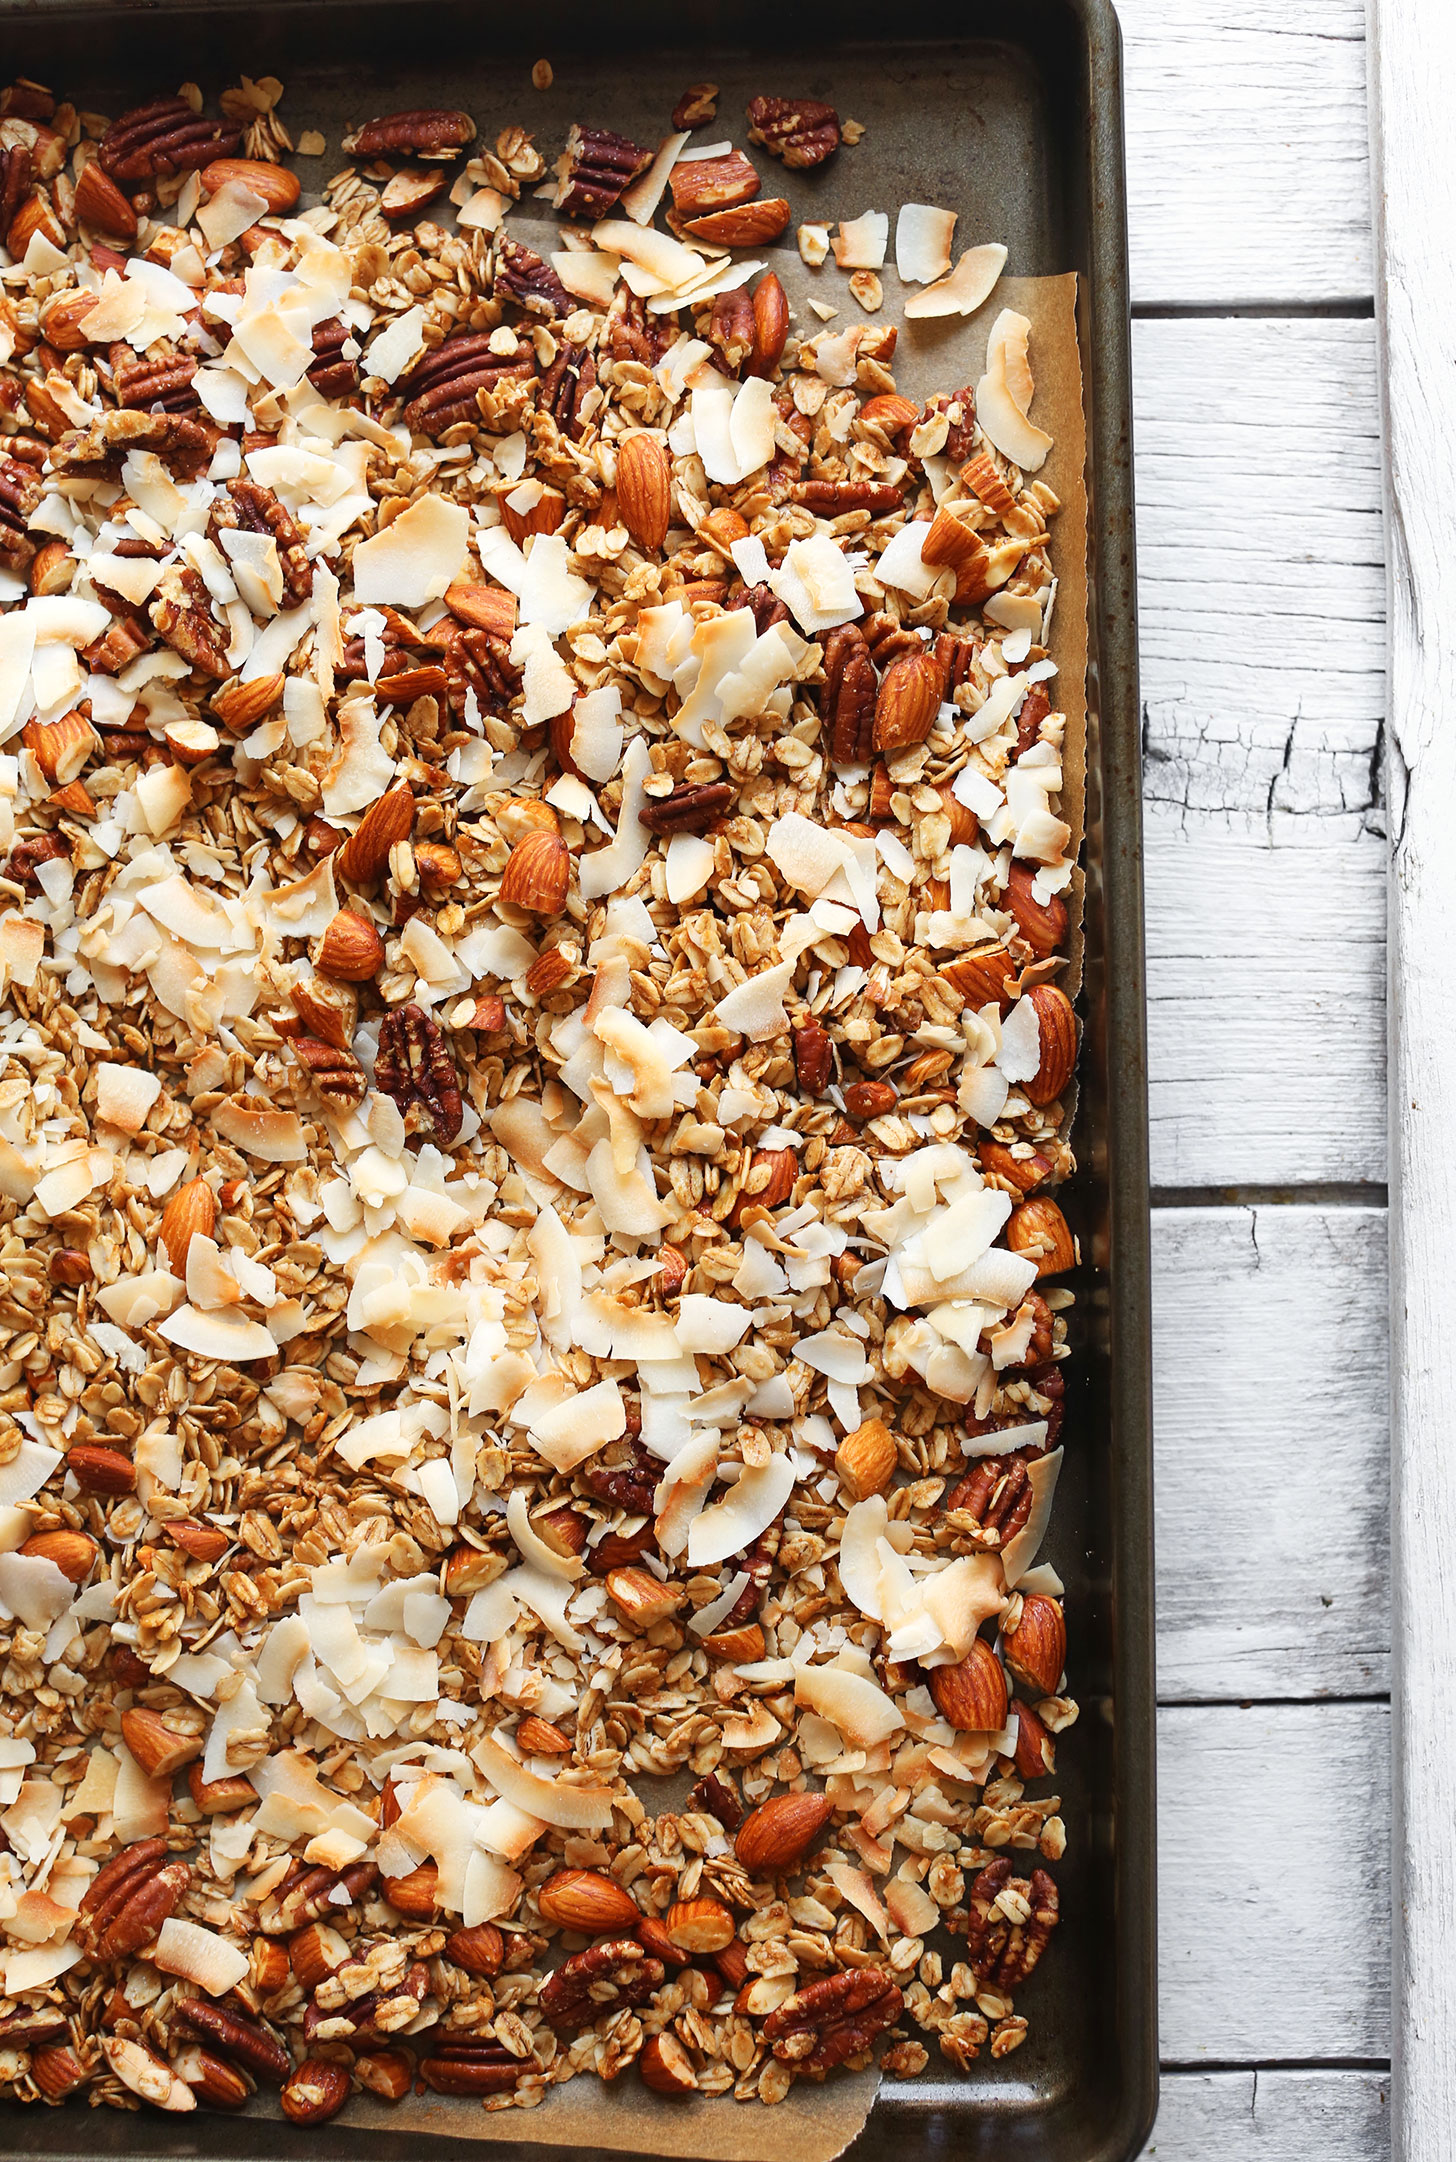 Parchment-lined baking sheet with freshly baked homemade Coconut Strawberry Granola